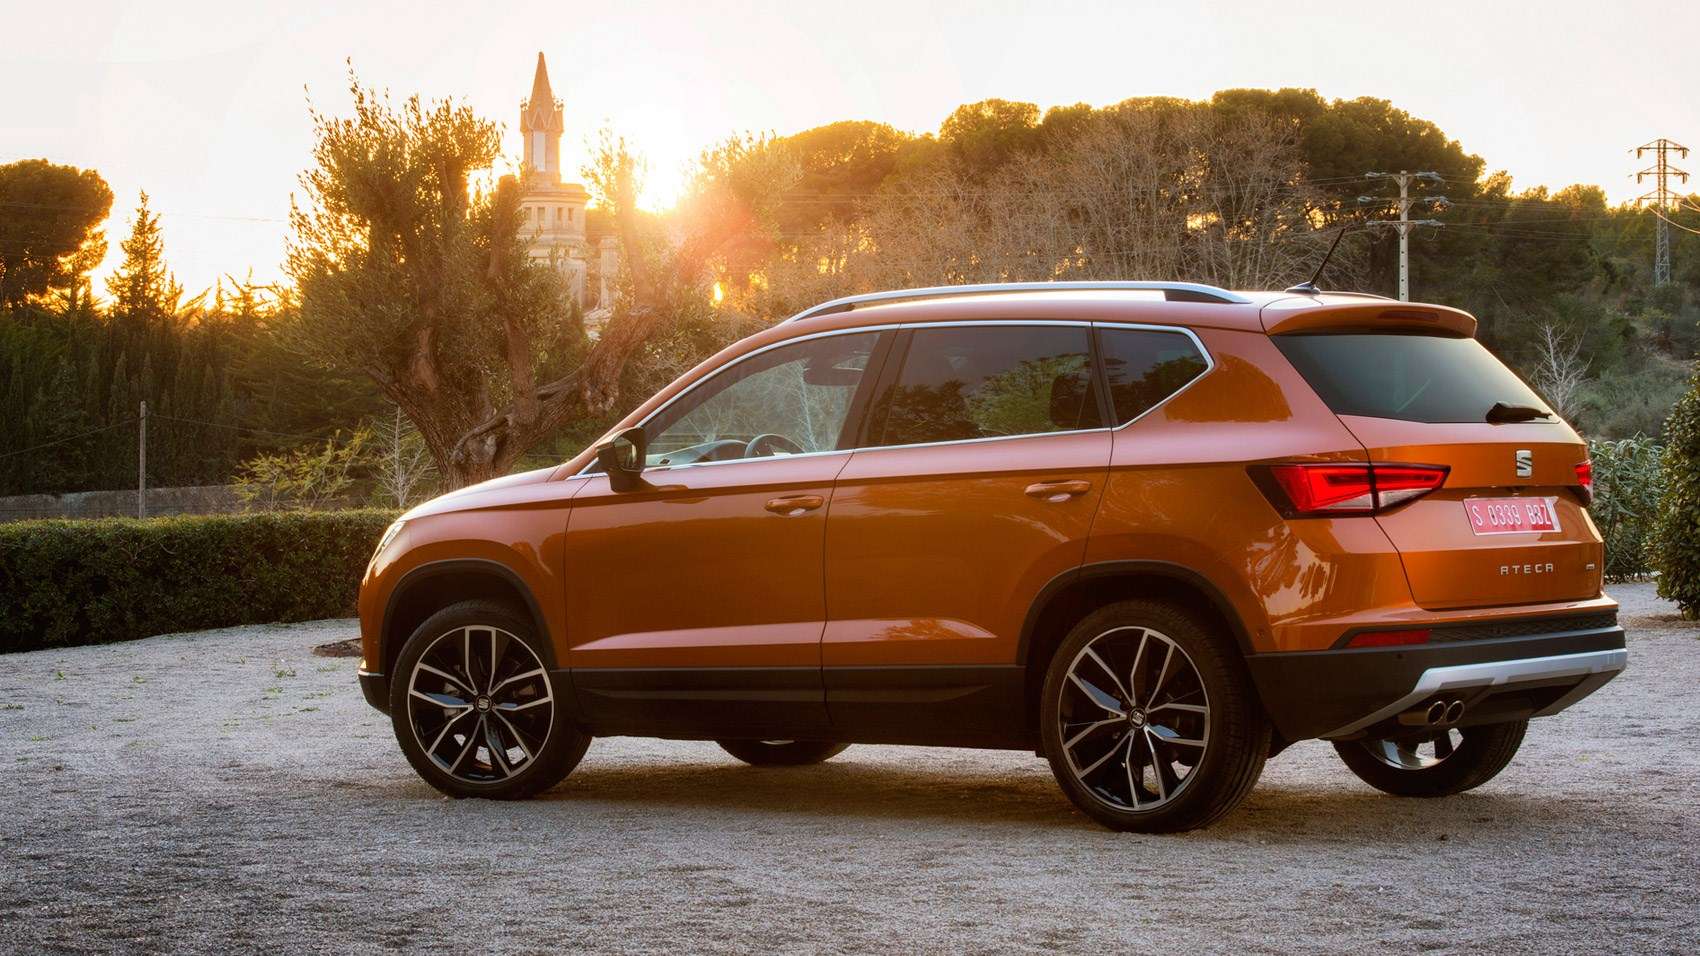 Seat Ateca 2.0 TDI 150 4Drive (2016) review by CAR Magazine